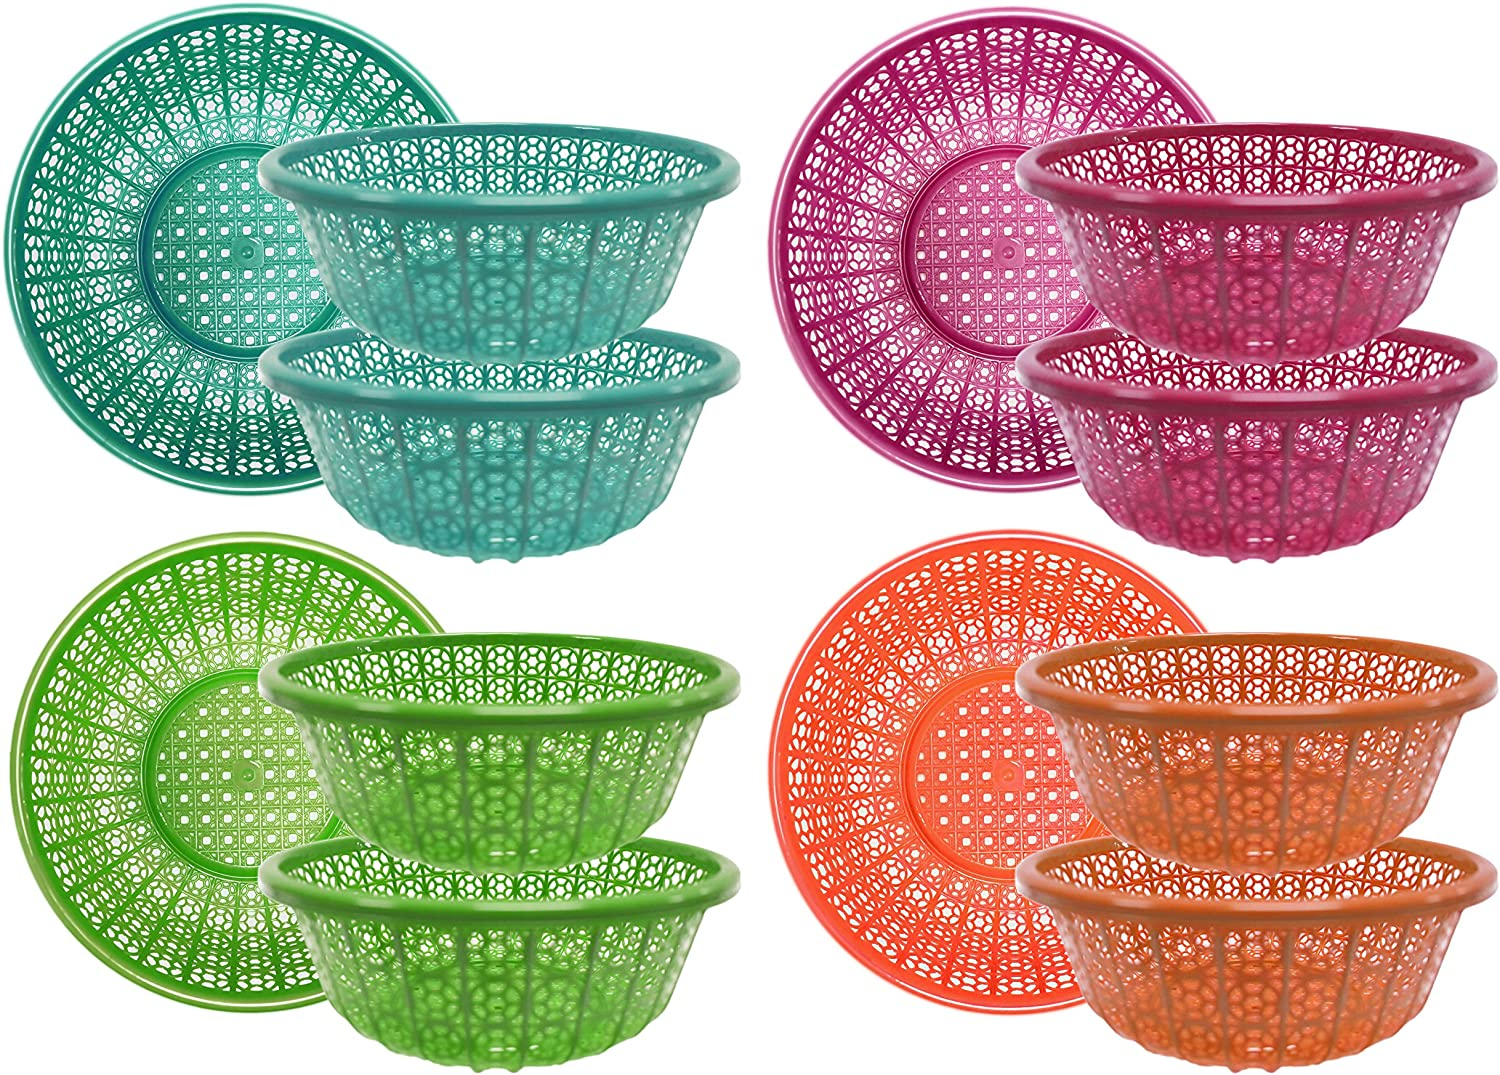 Assorted Food and Garden Collander Strainers! Use for Food Baskets With Liner - Food Strainer - Gardening Sifter and More! (12)